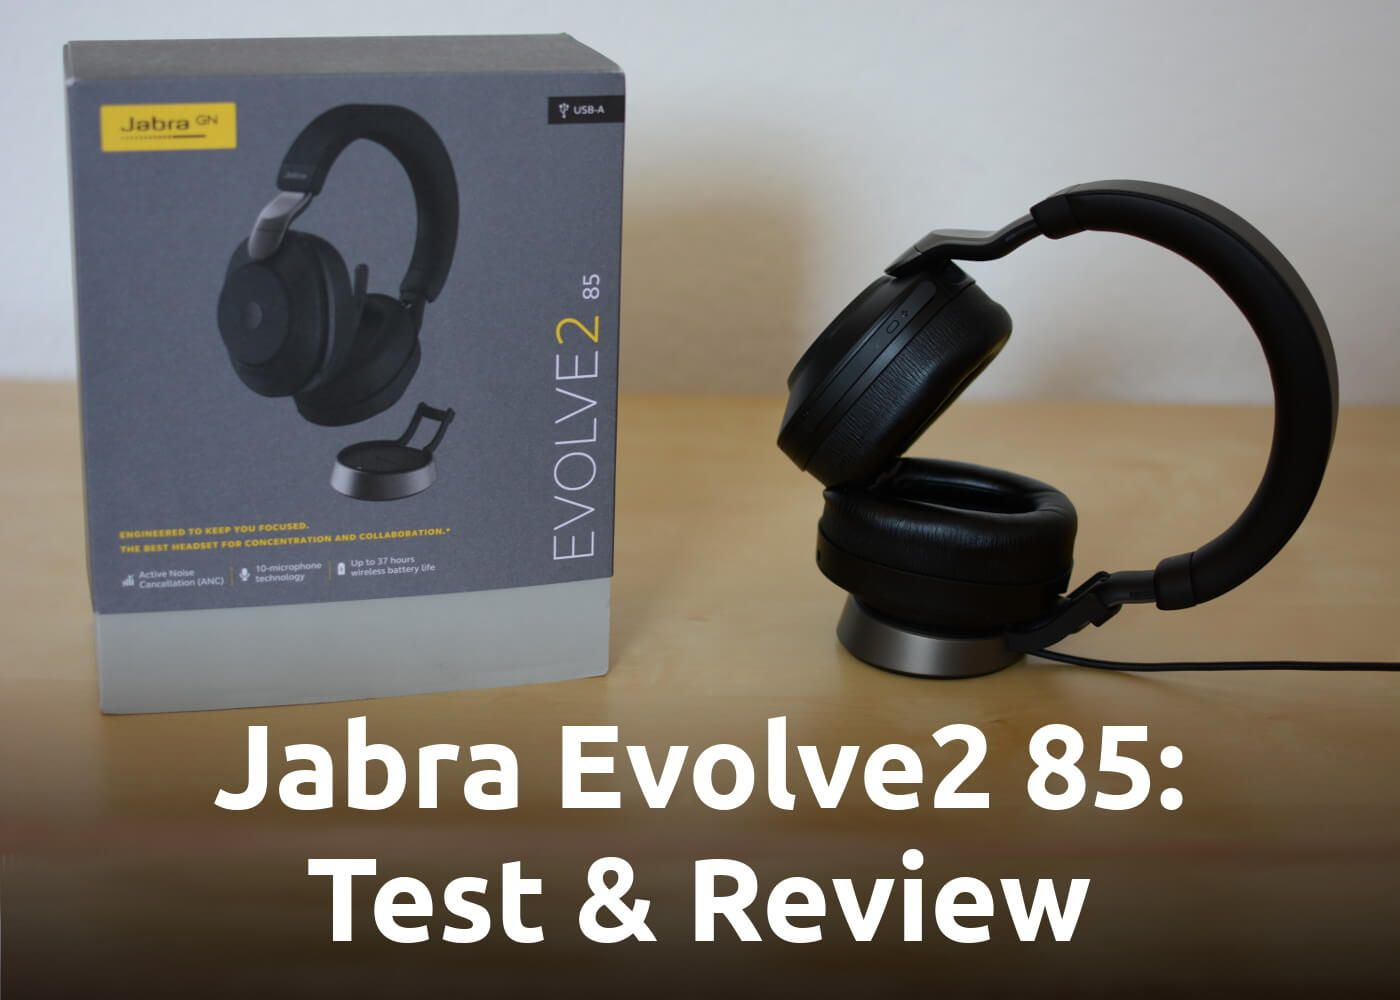 Jabra Evolve2 85 Test Review Hands On The Bluetooth Headset